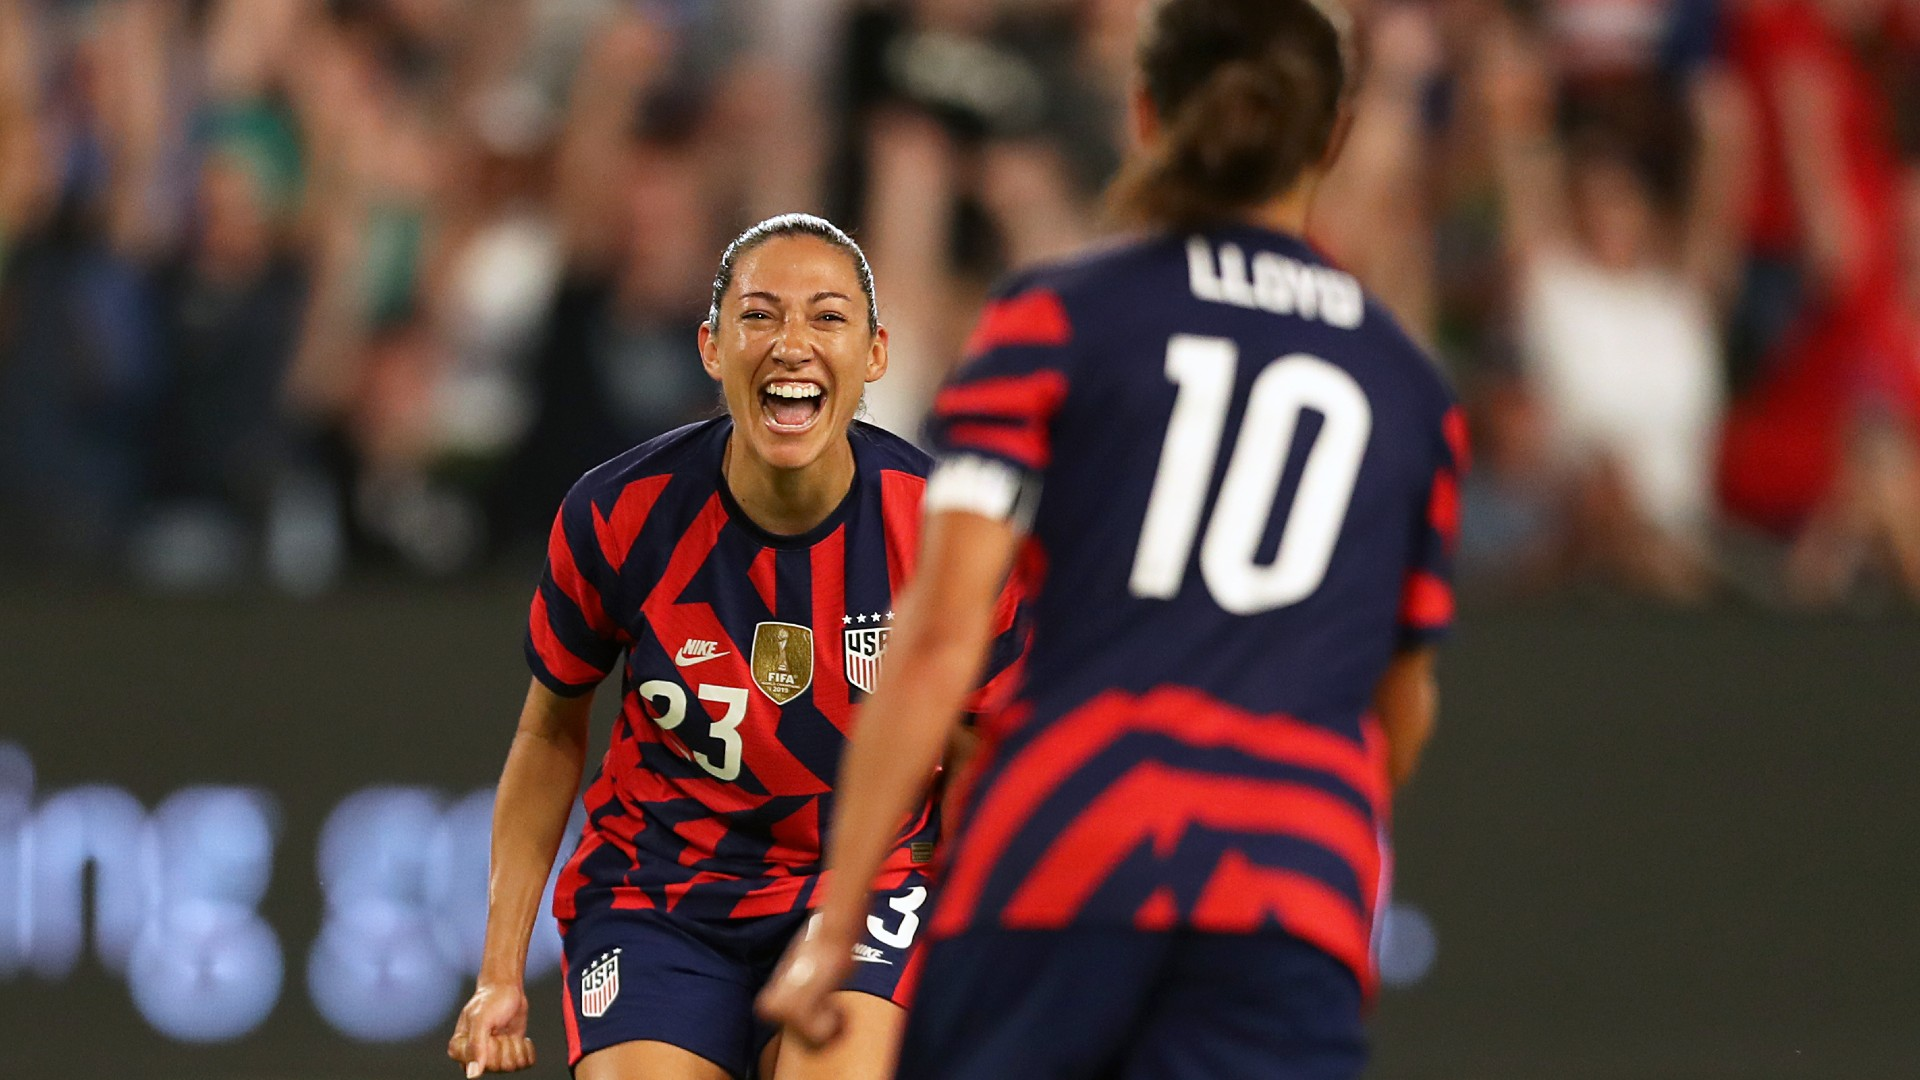 USWNT vs. Mexico: Time, TV, streaming, rosters for USA women's pre-Olympic friendly